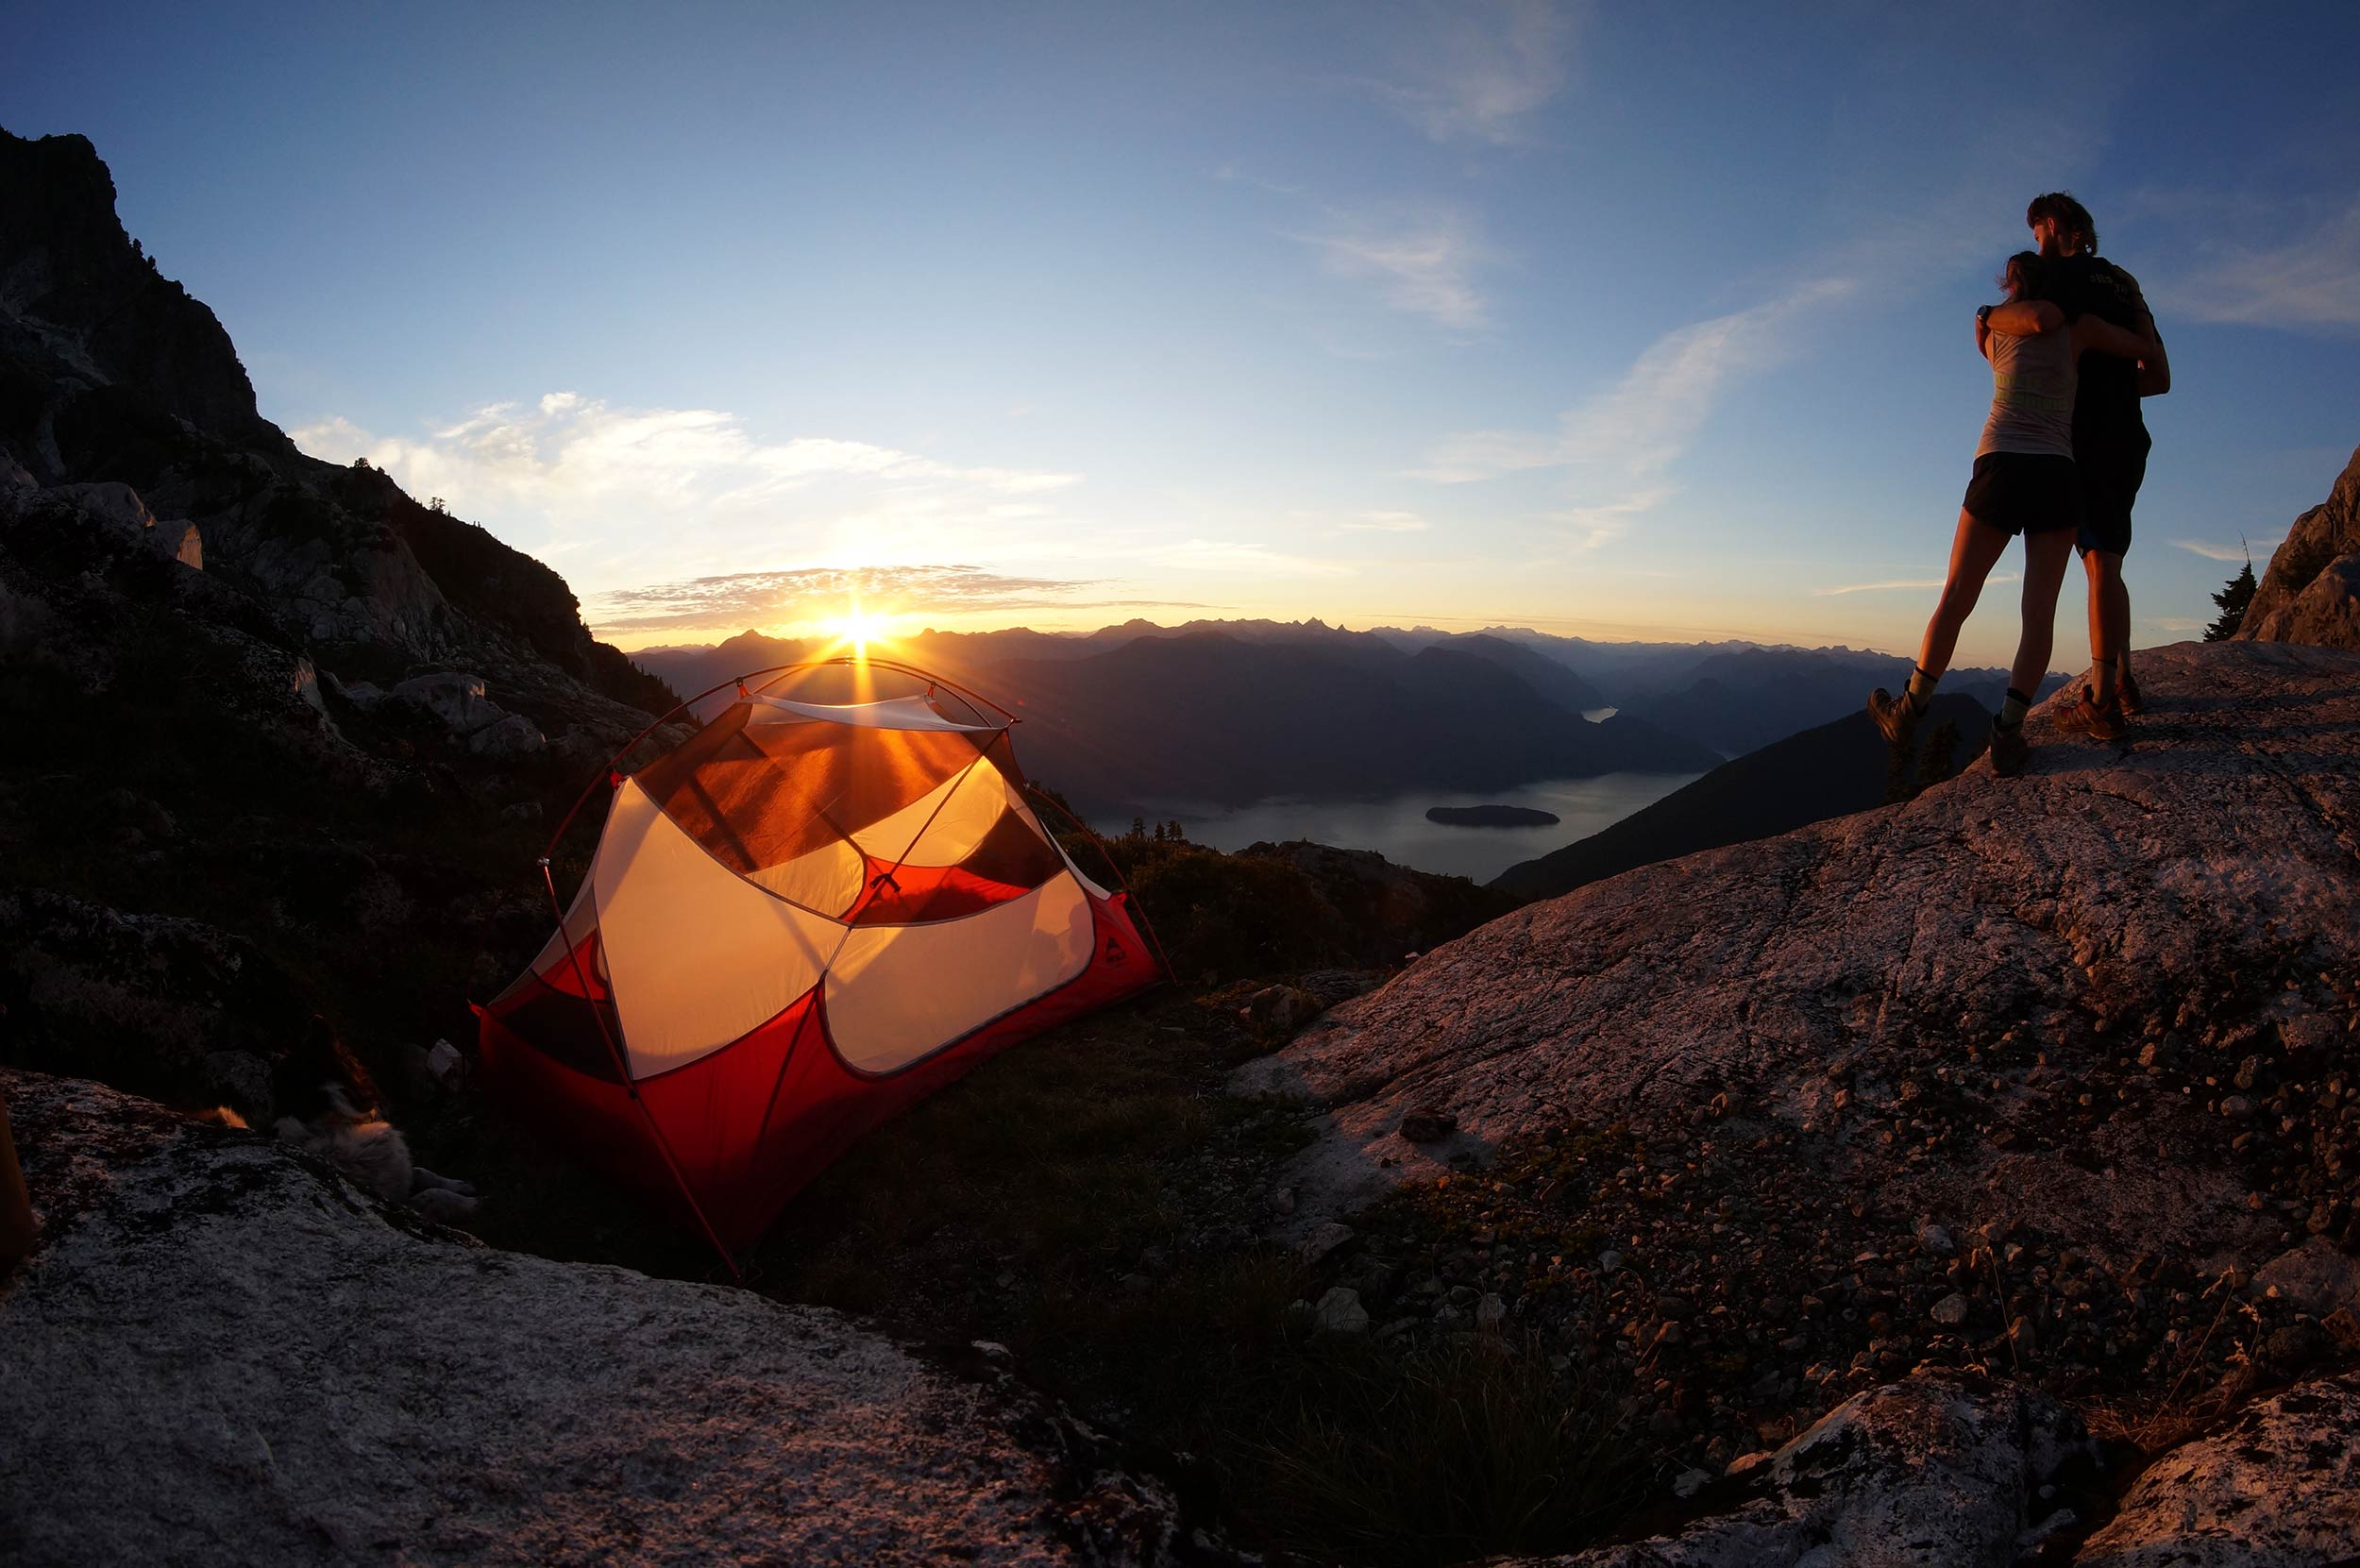 golden_ears_sunset_tent_bc.jpg